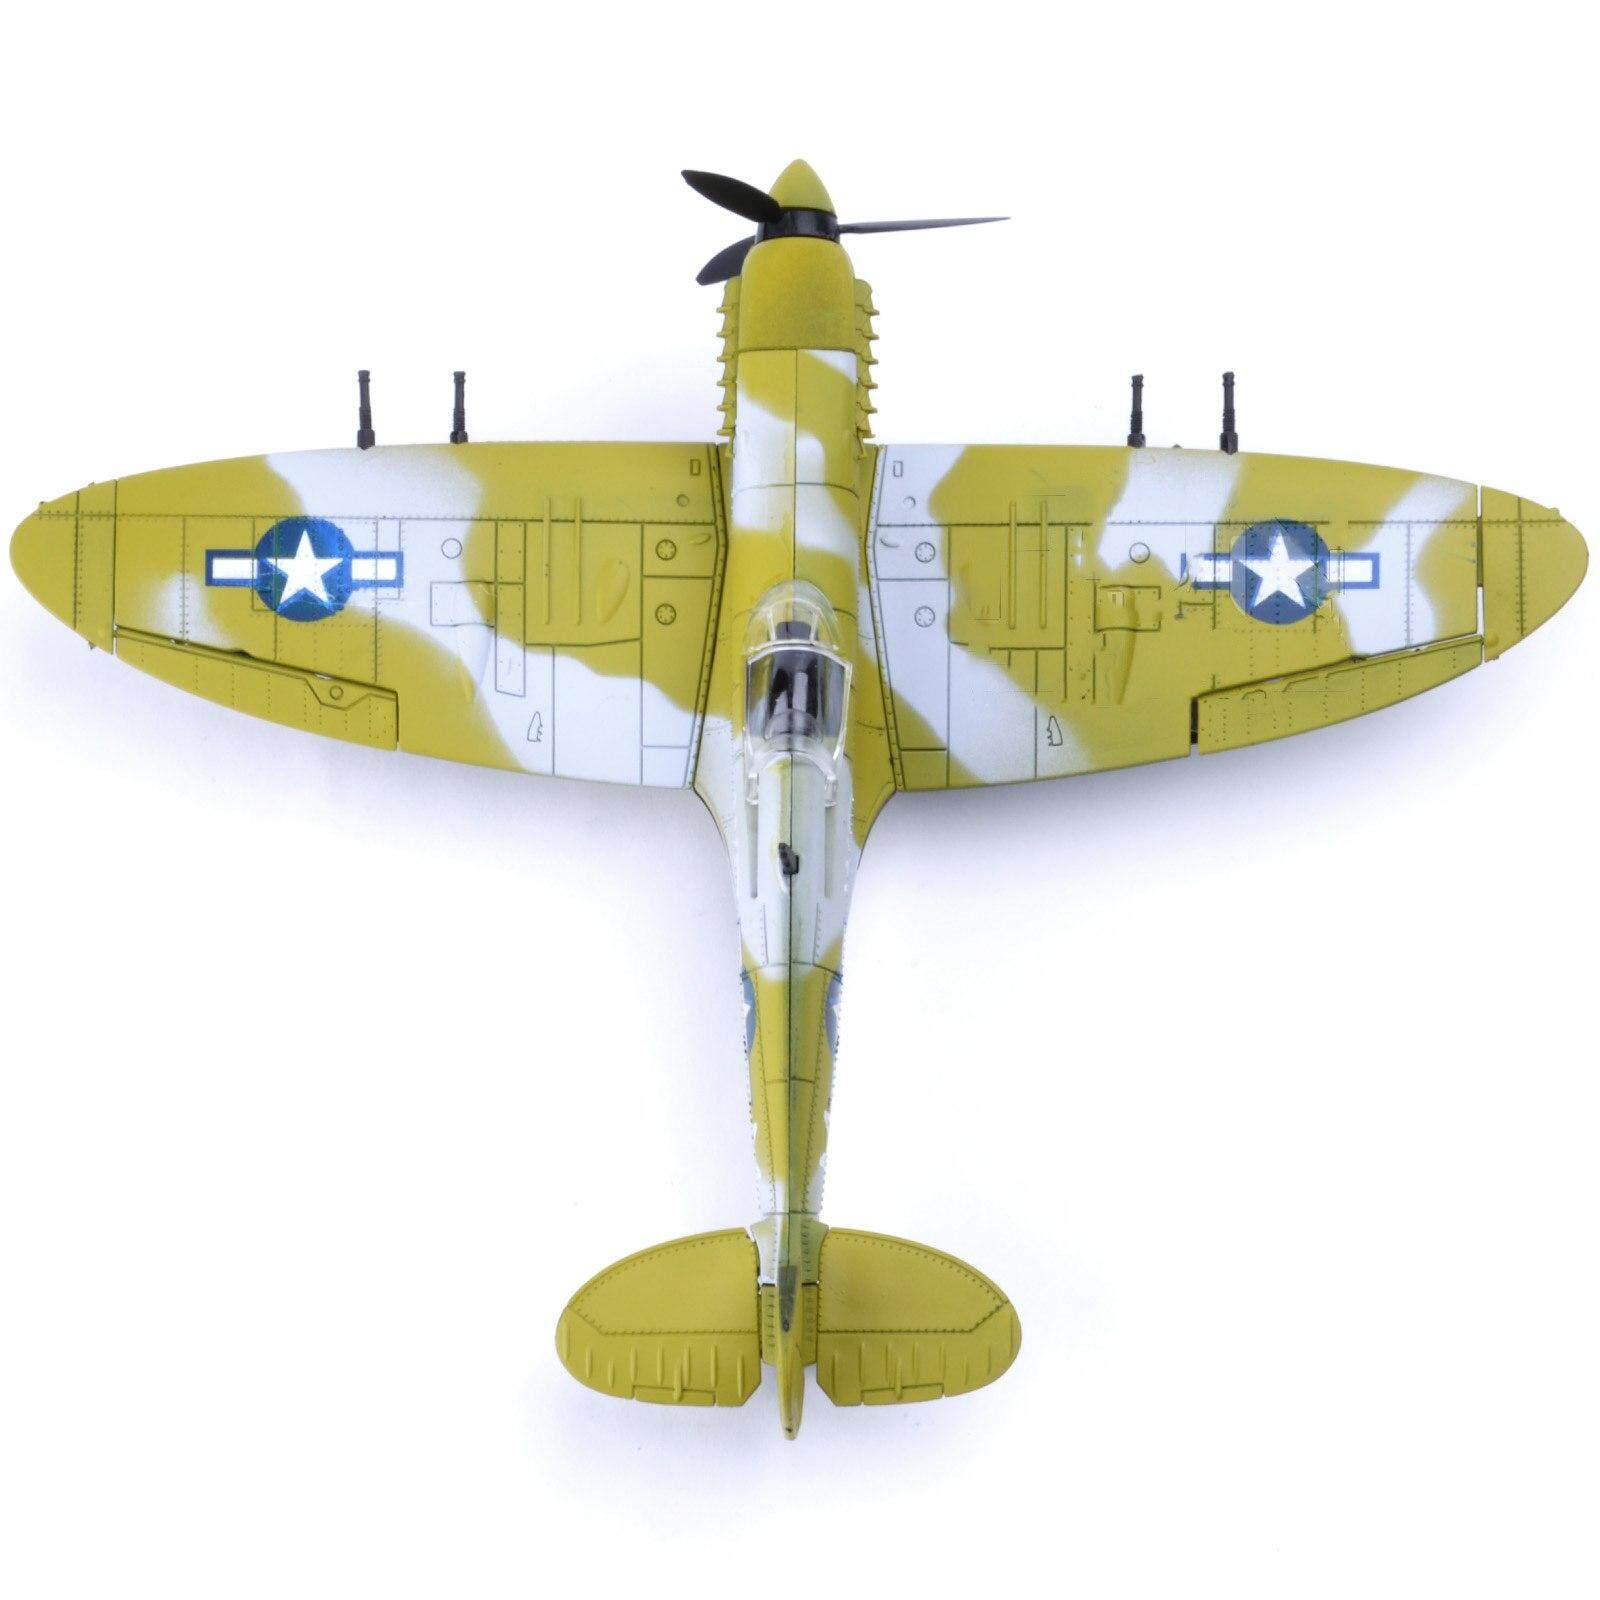 Buy Airplane Construction Kits at Best Price In Malaysia